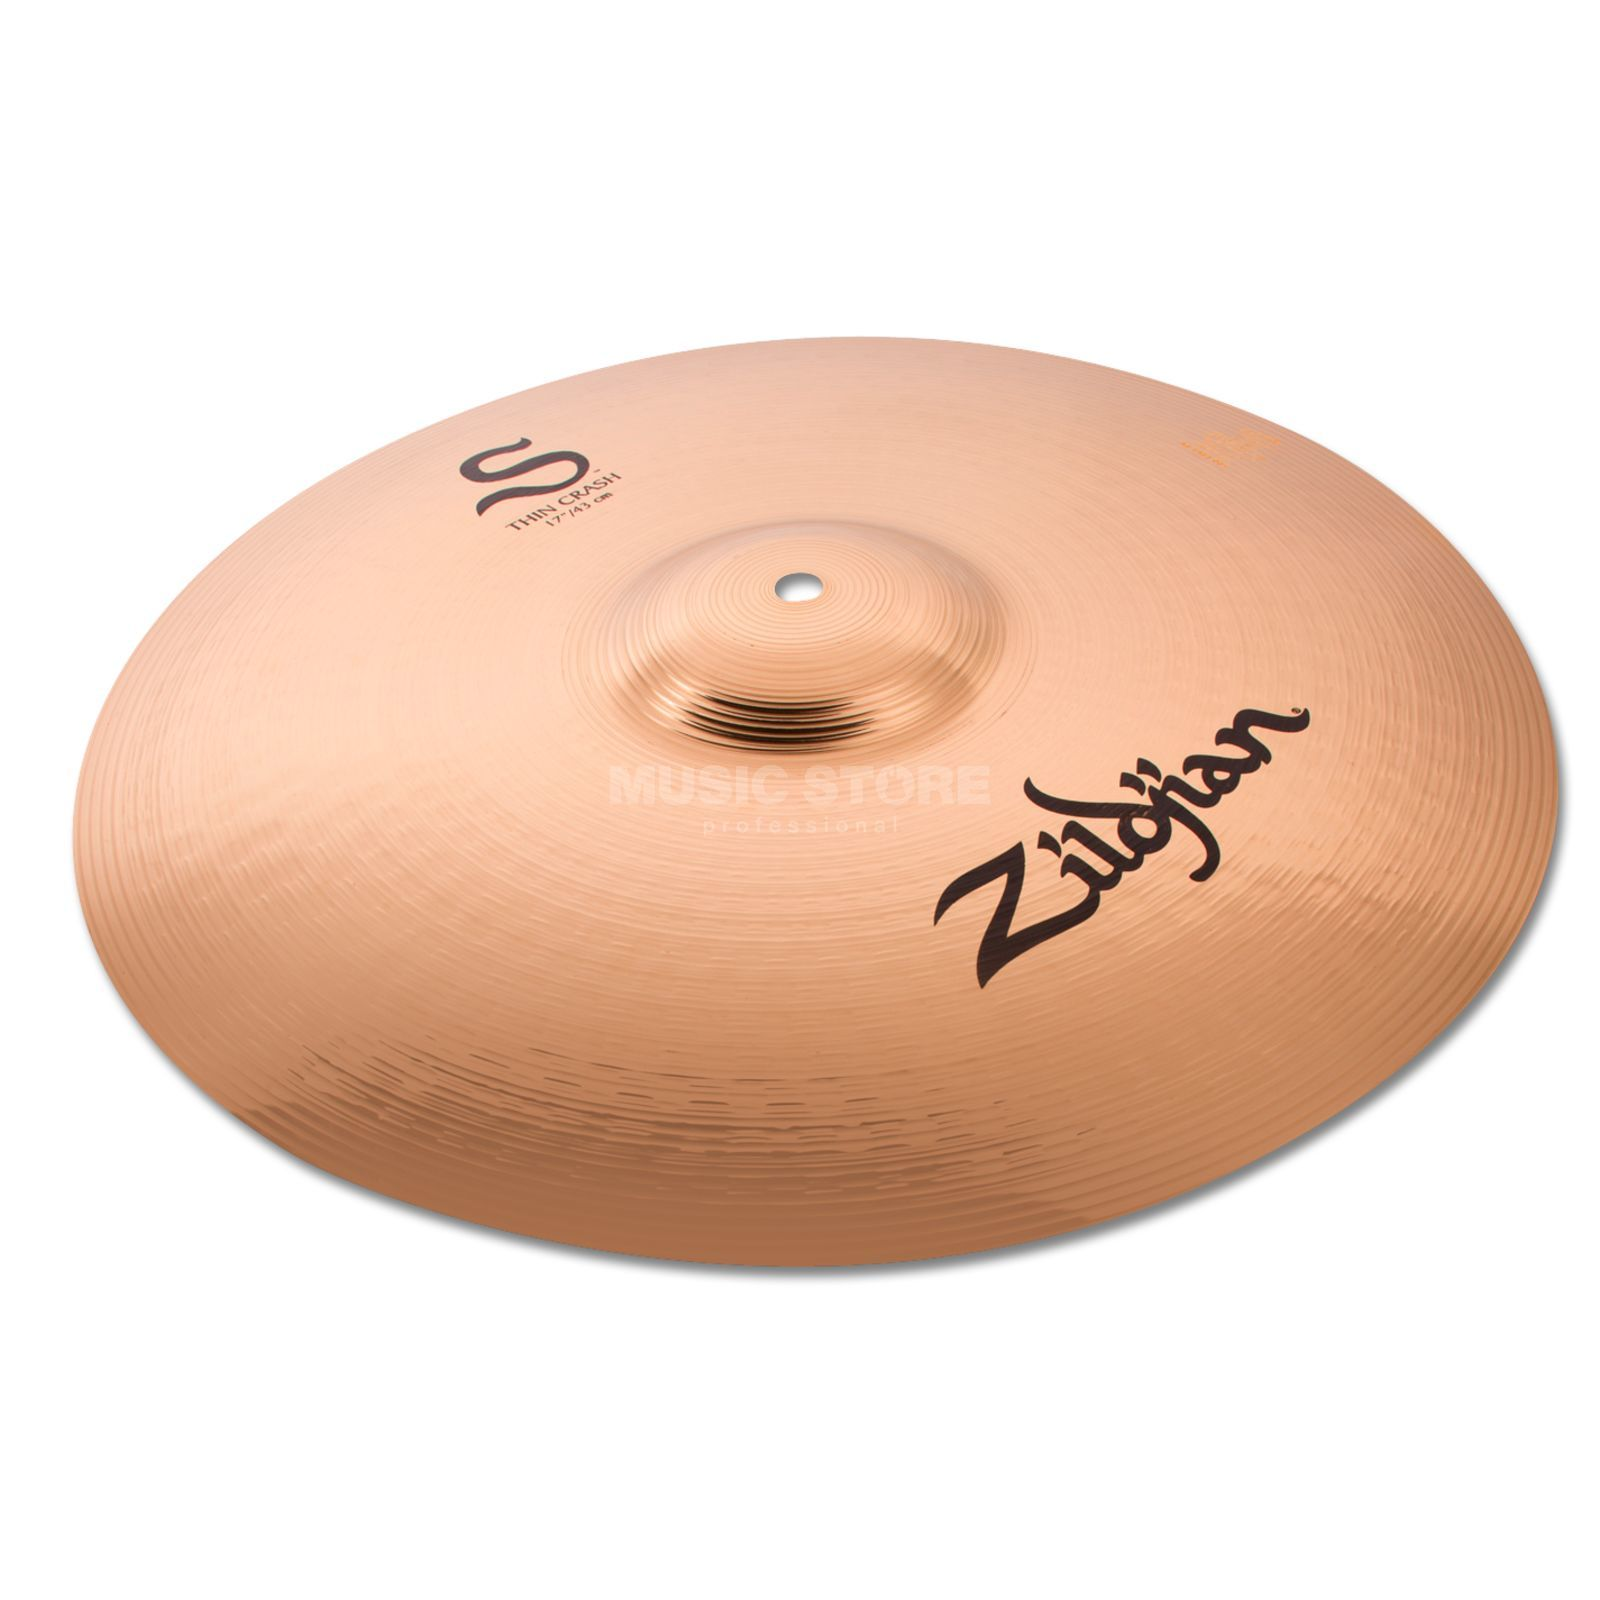 "Zildjian S-Series Thin Crash 17"" Brilliant Produktbild"